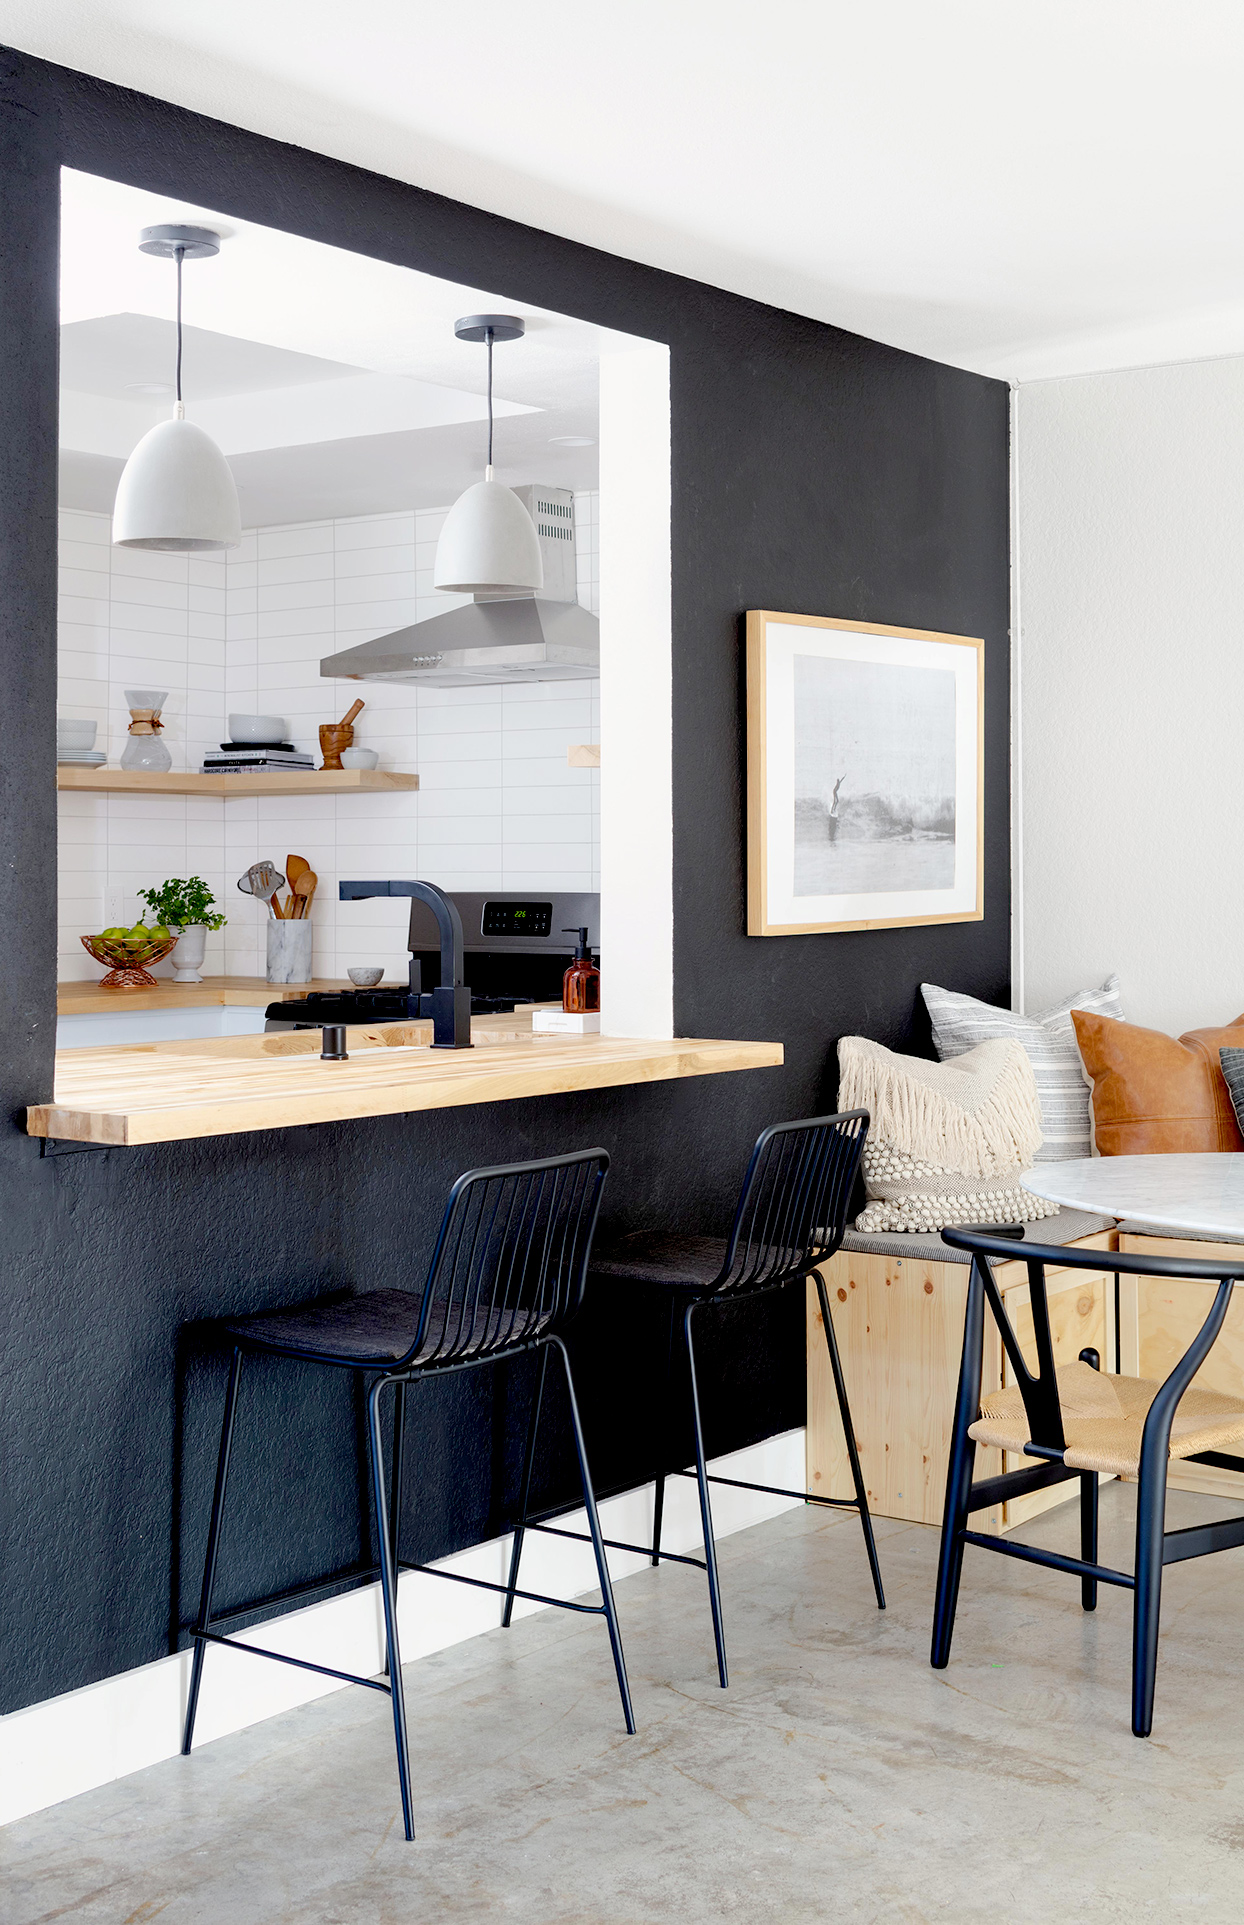 Wall cutout to kitchen with stool seating